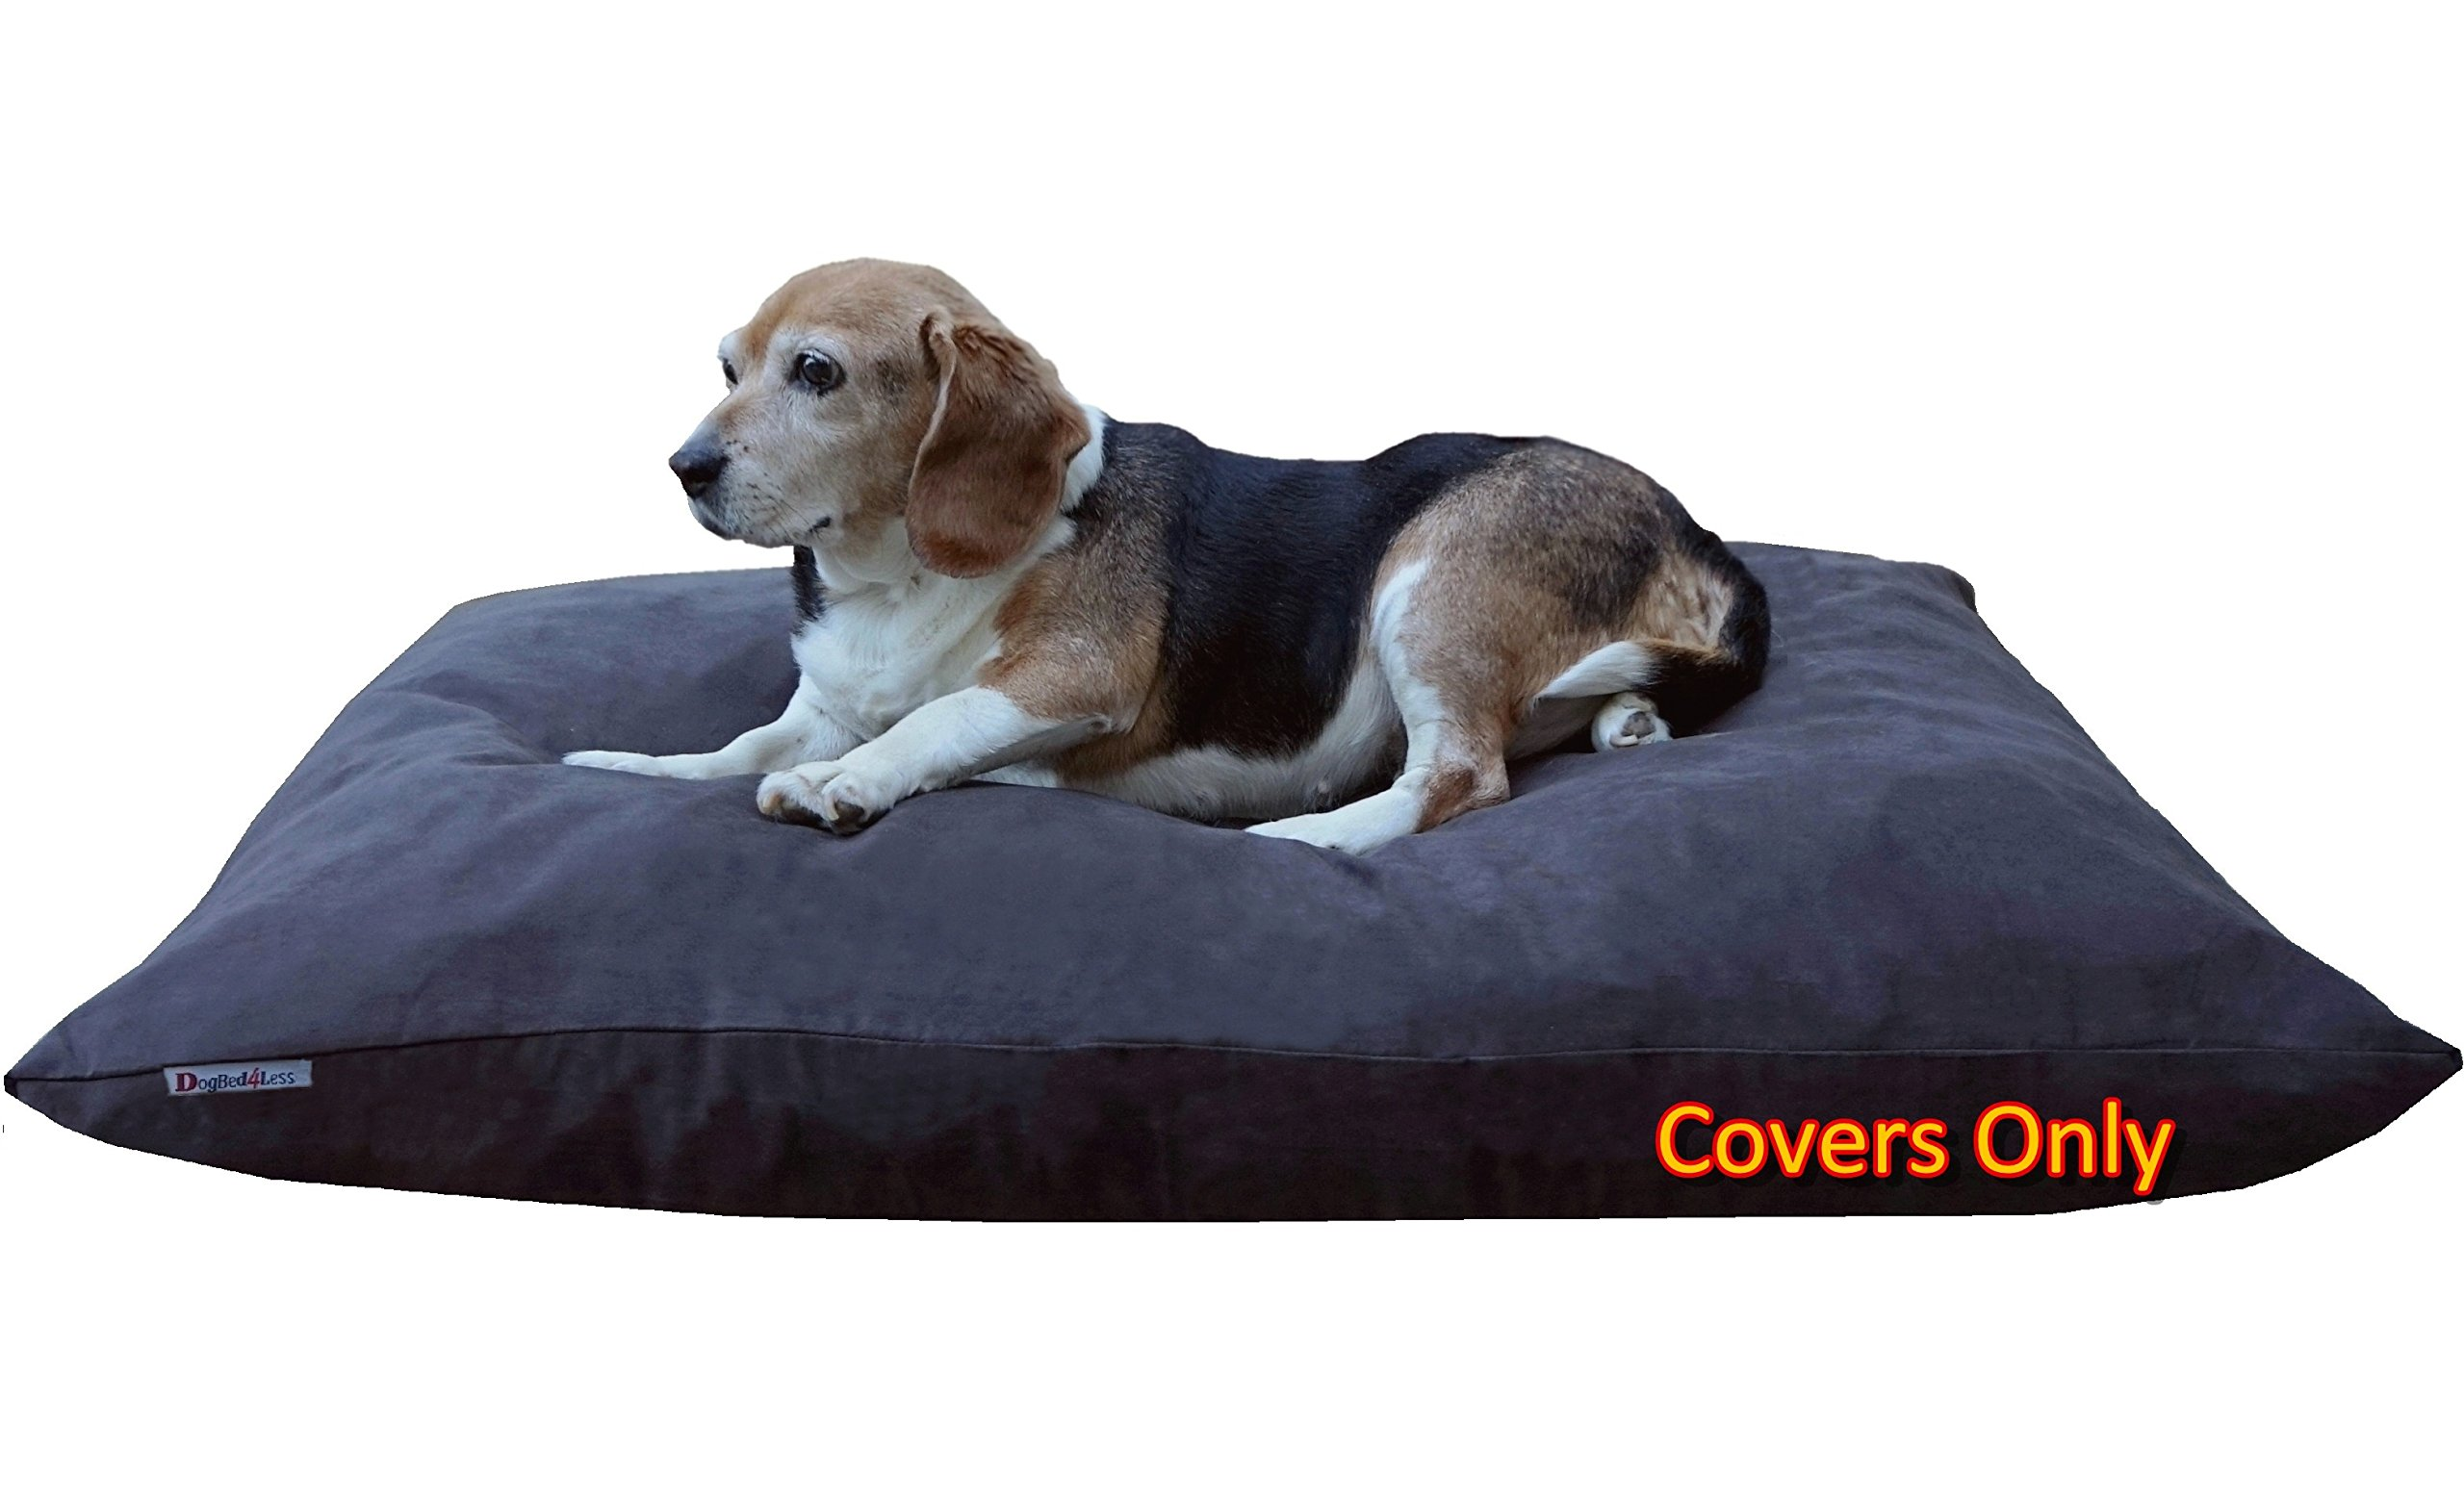 Do It Yourself DIY Pet Bed Pillow Duvet Suede Cover + Waterproof Internal case for Dog/Cat at Medium 36''X29'' Espresso Color - Covers only